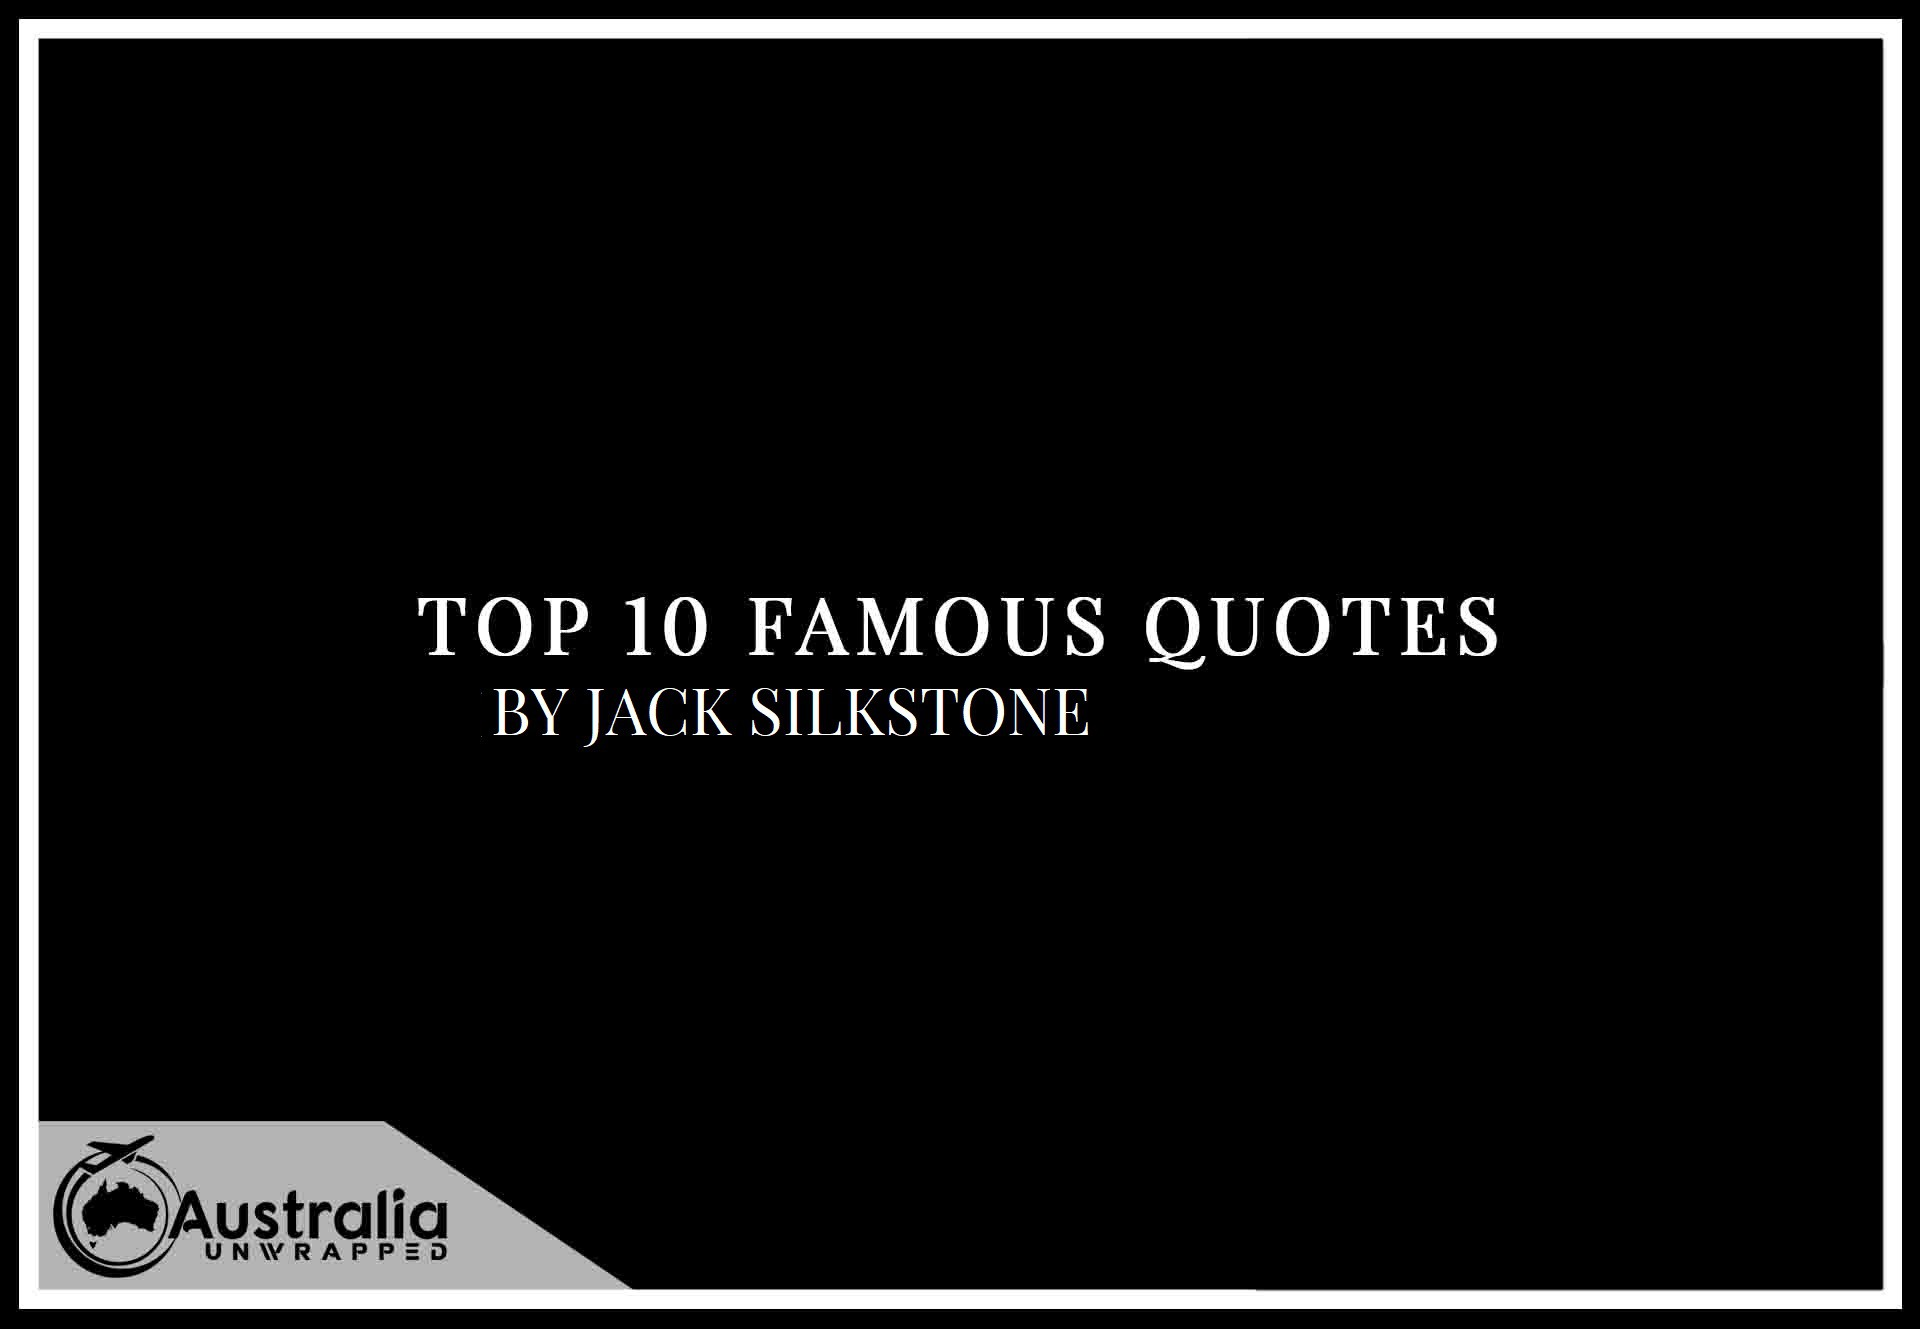 Top 10 Famous Quotes by Author Jack Silkstone